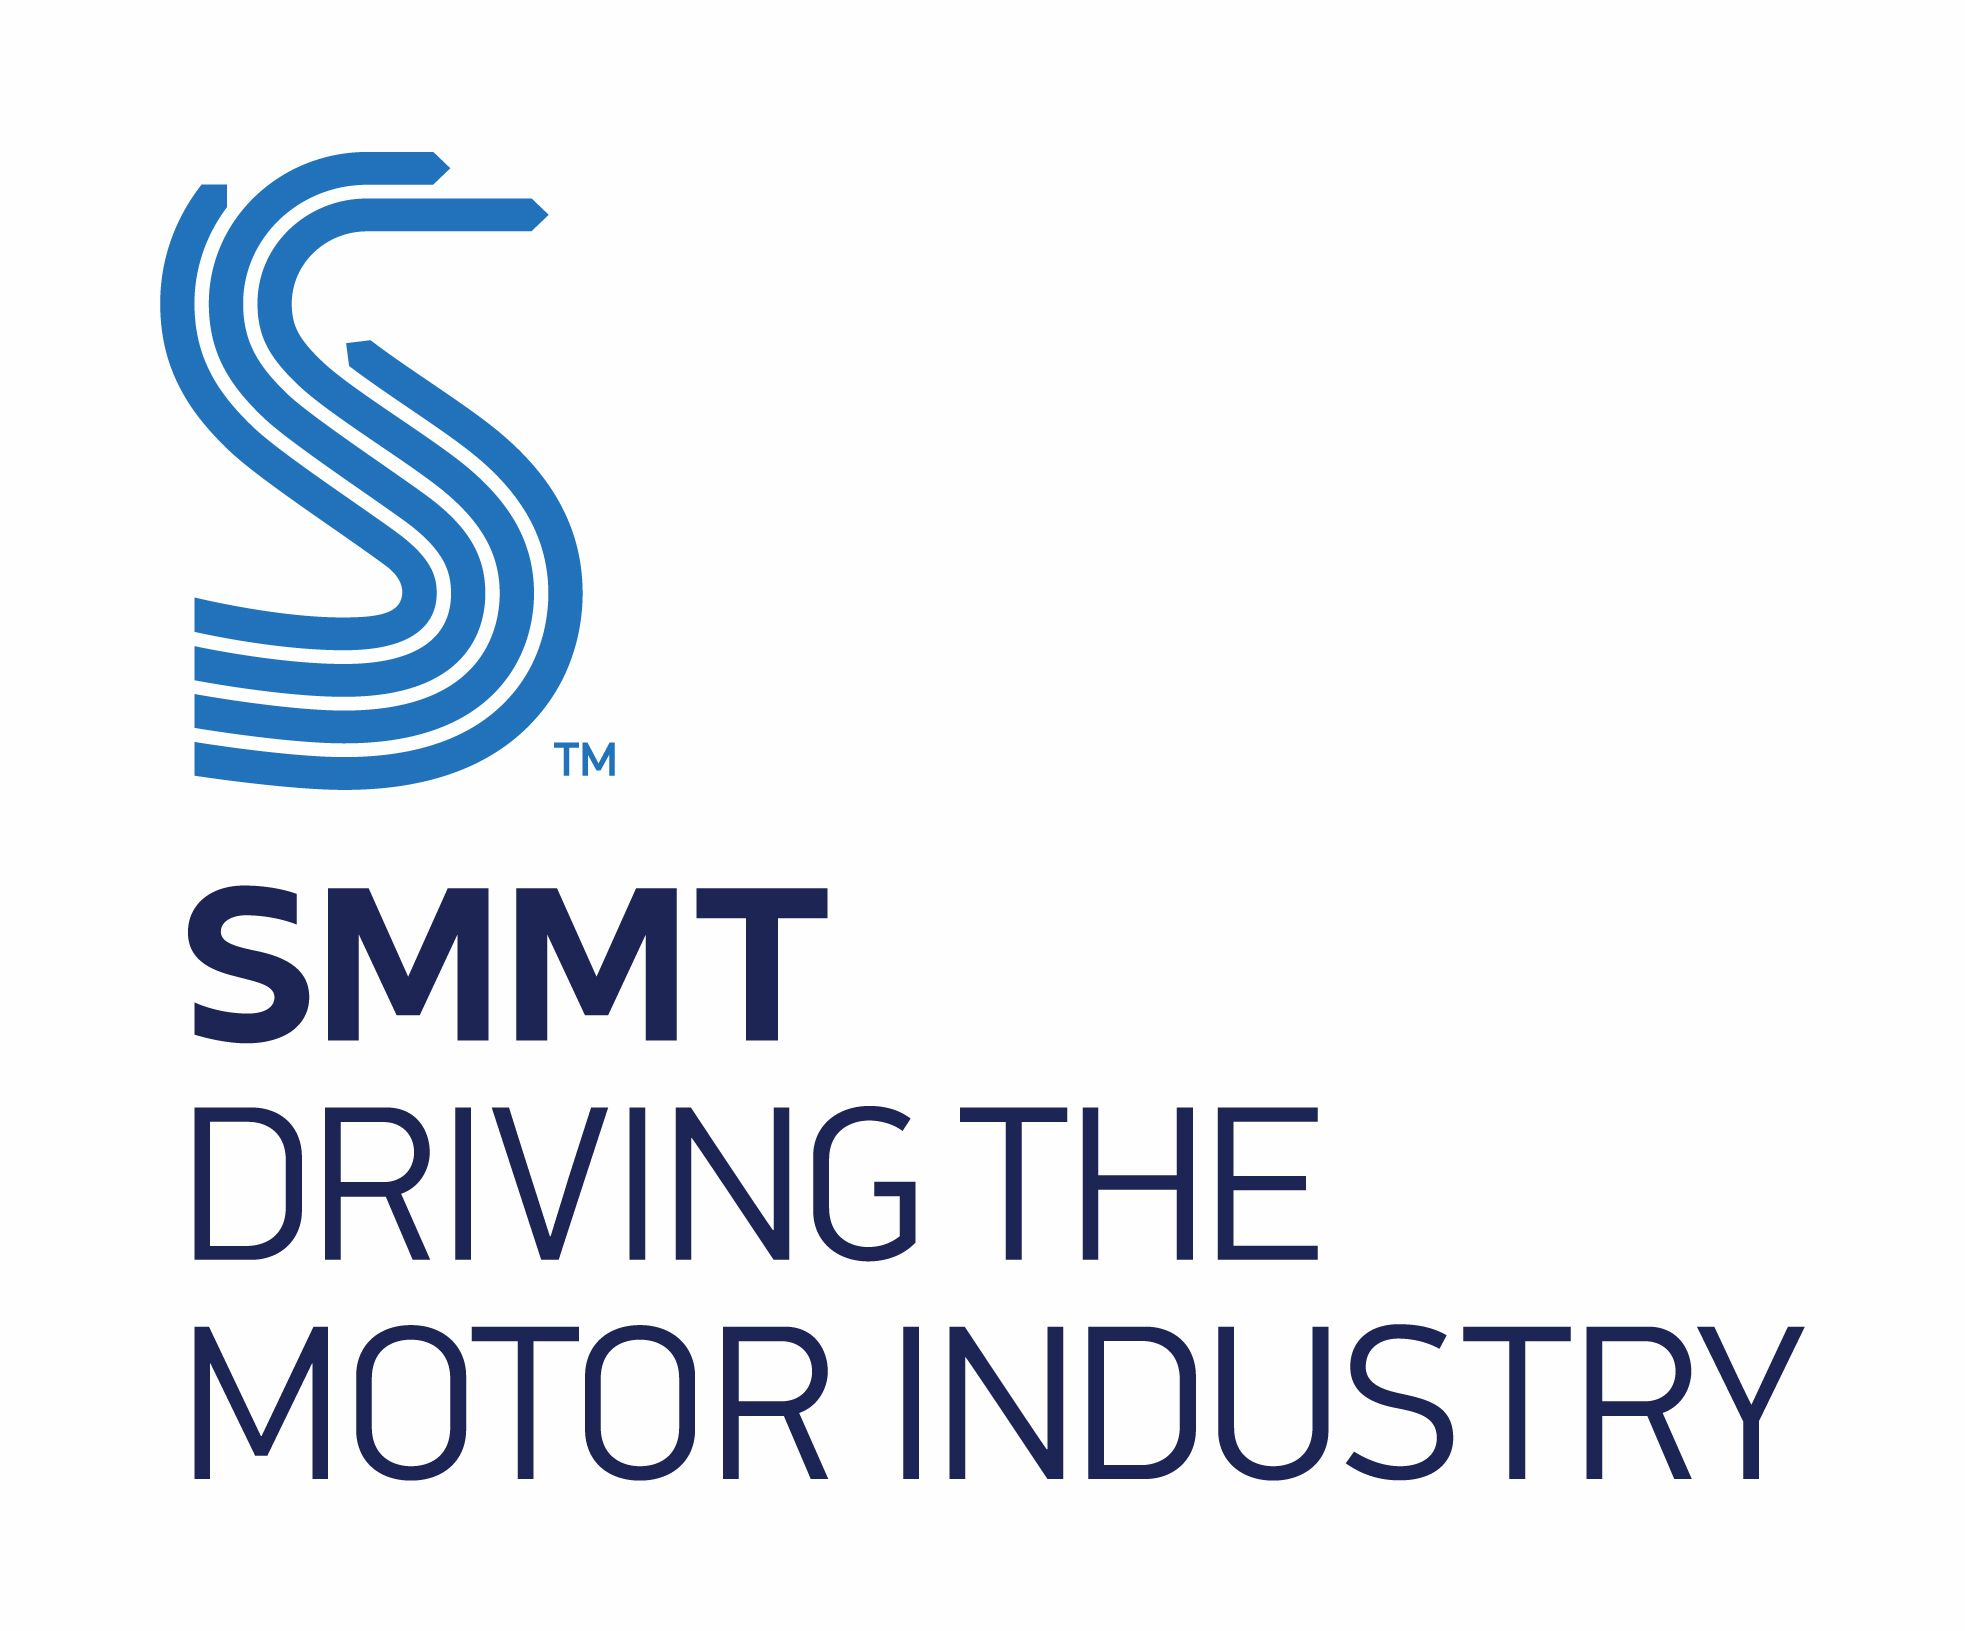 Society of Motor Manufacturers